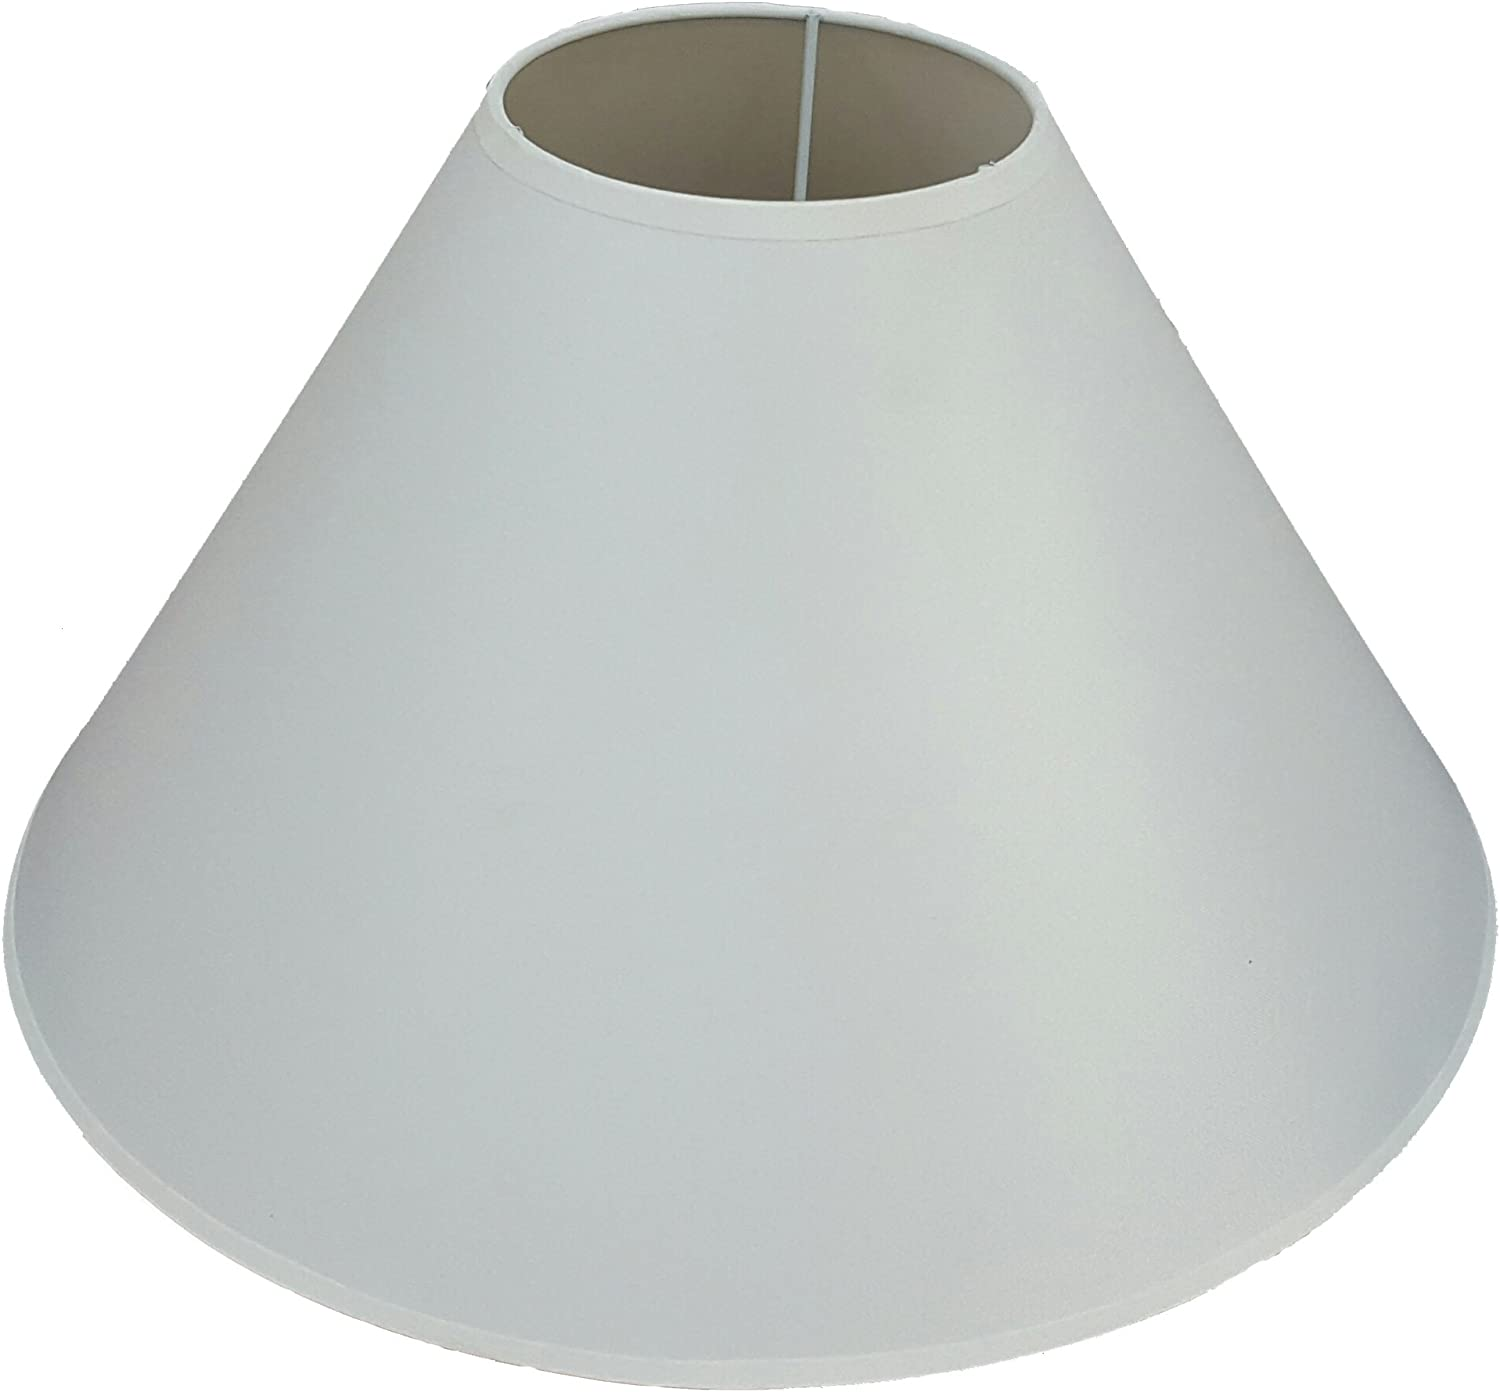 9 23cm Coolie Lamp Shade Ceiling Lamp